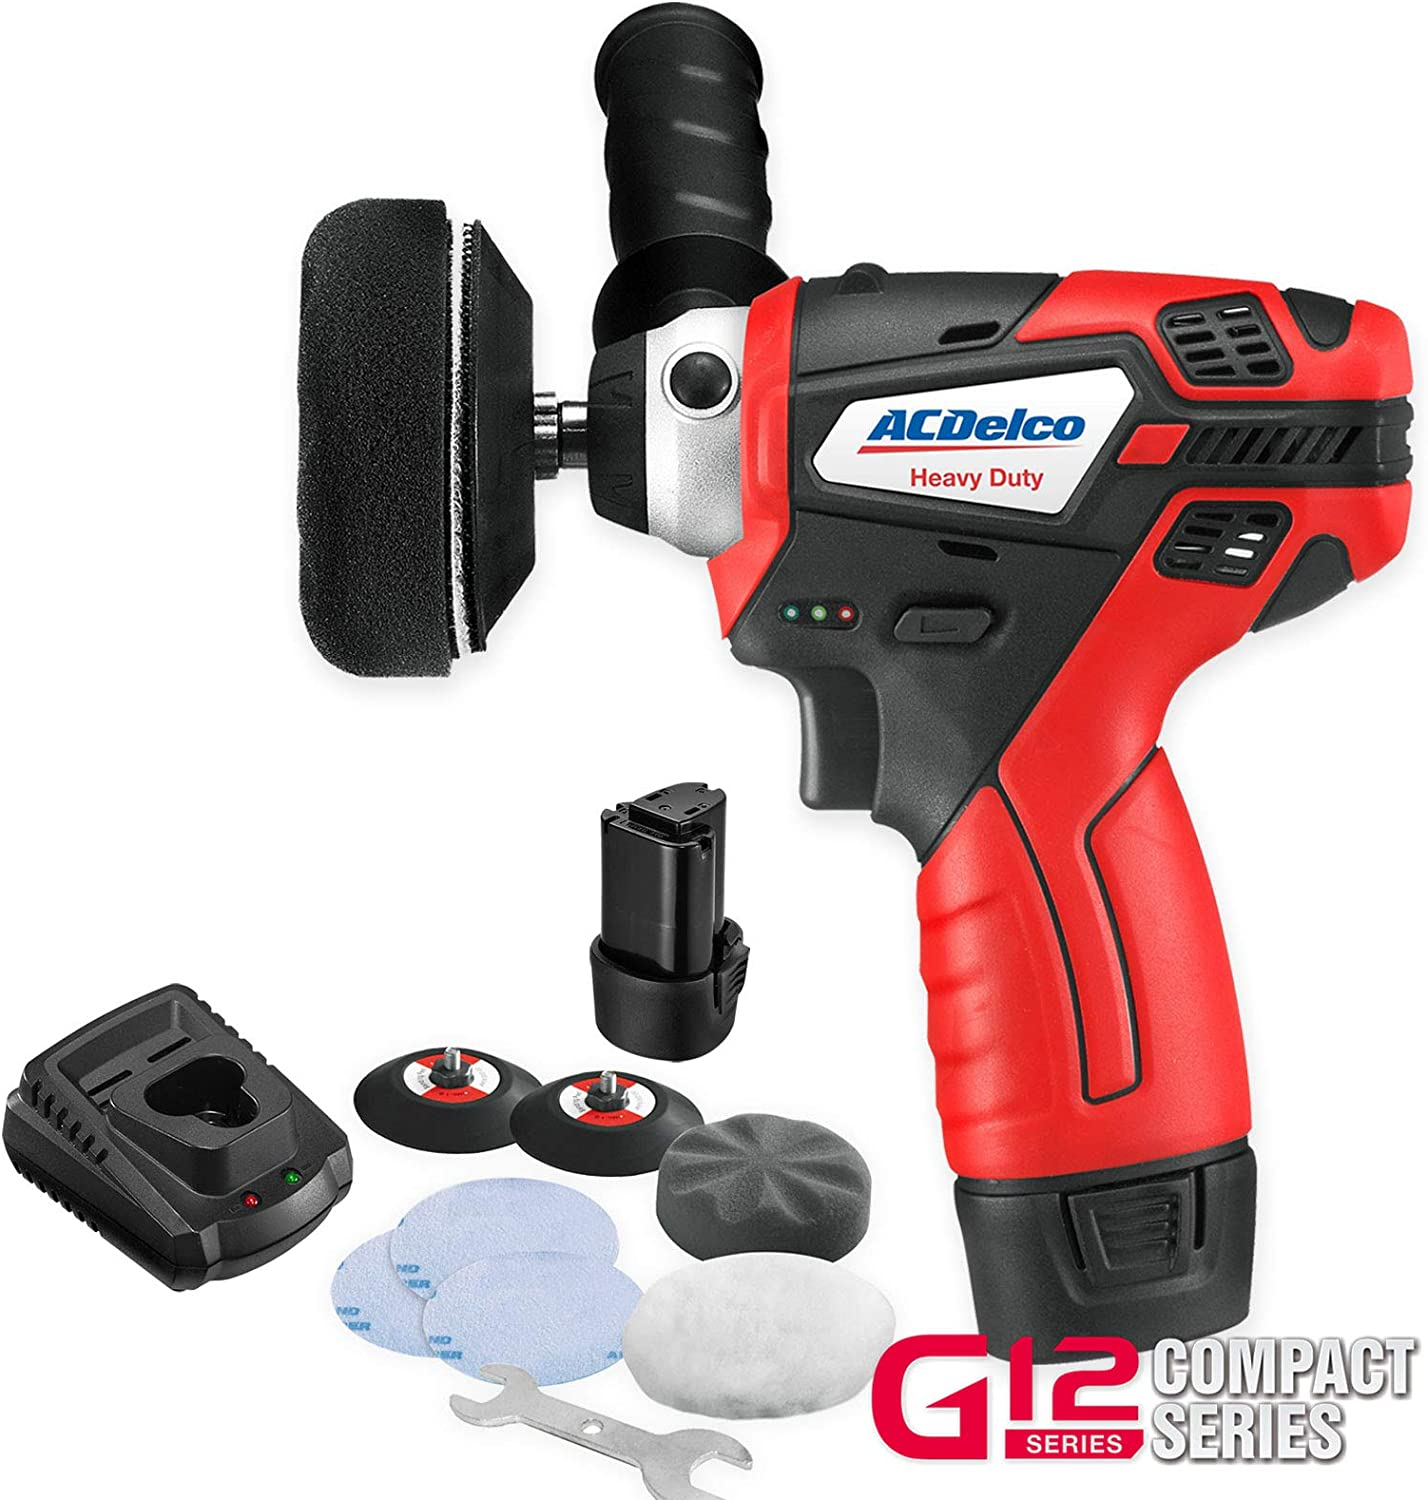 ACDelco Animer and price revision G12 Series Sale 12V Cordless 3